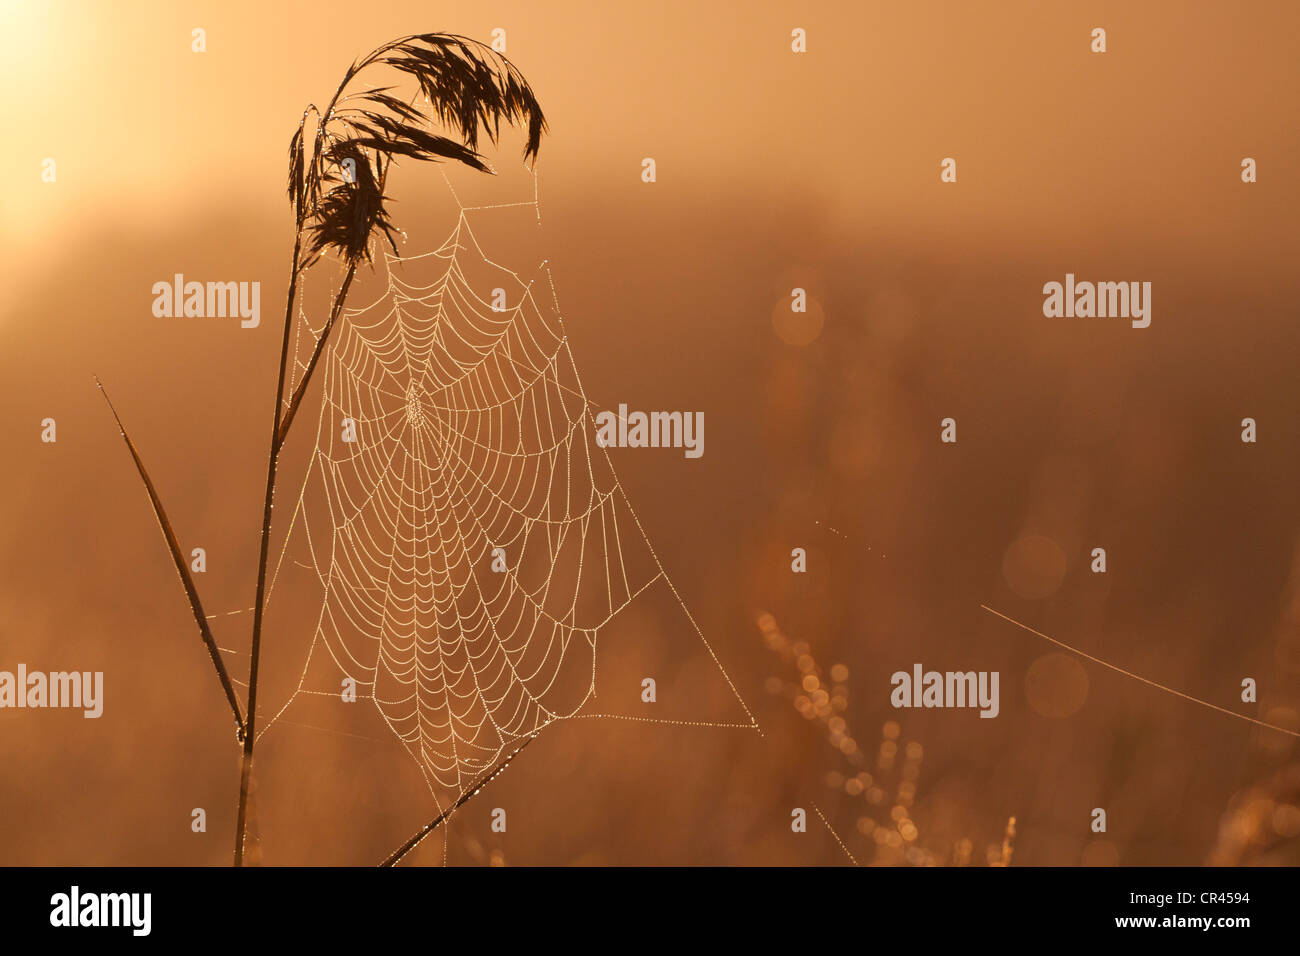 Spider web on blade of grass - Stock Image